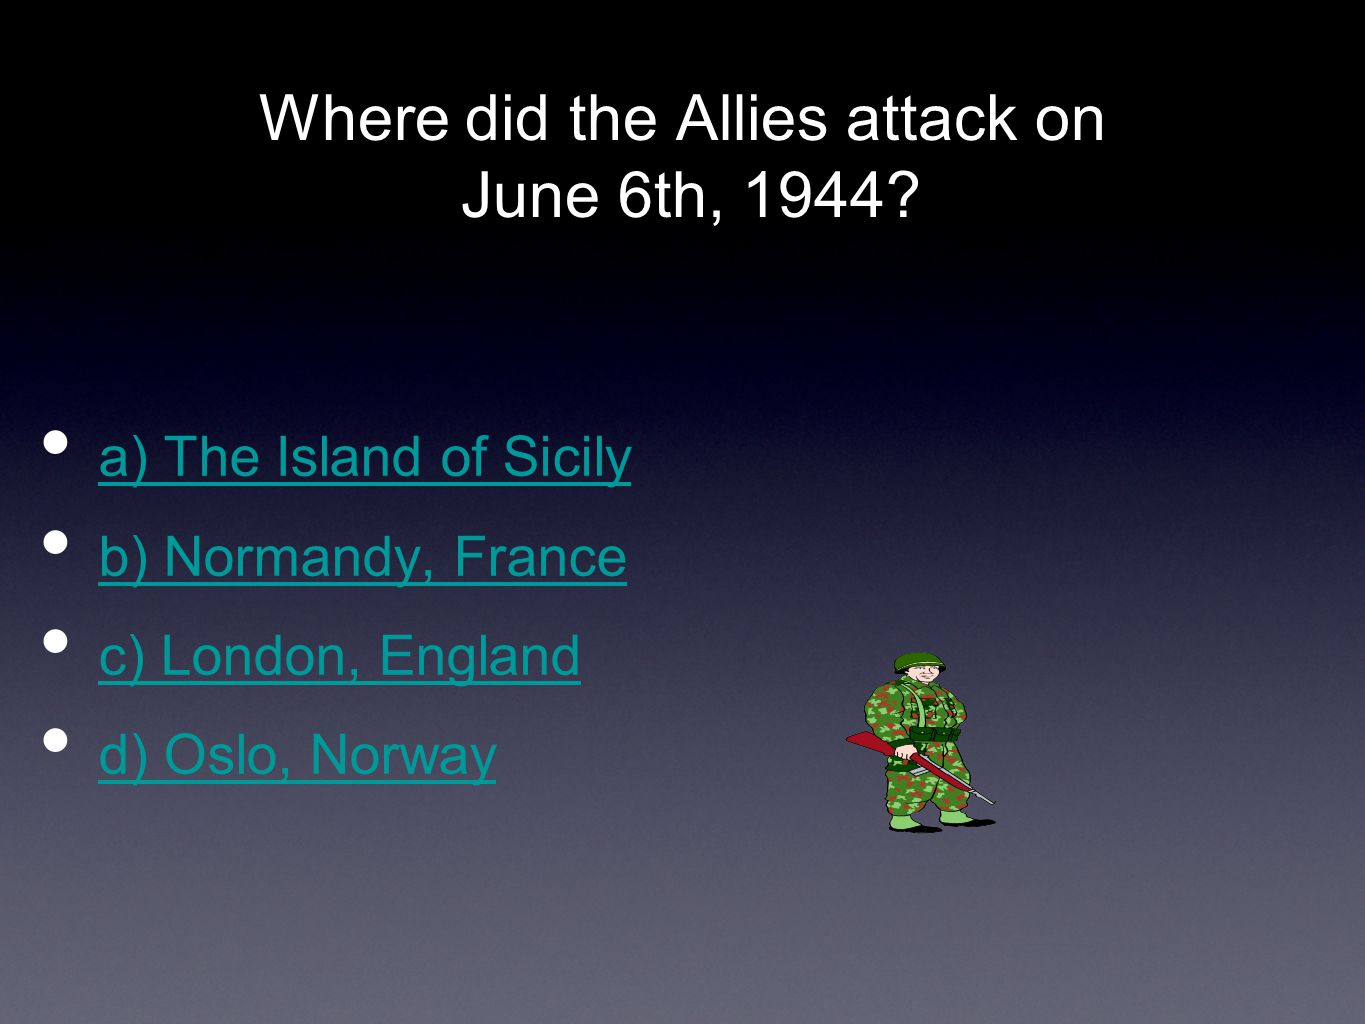 Where did the Allies attack on June 6th, 1944? a) The Island of Sicily b) Normandy, France c) London, England d) Oslo, Norway